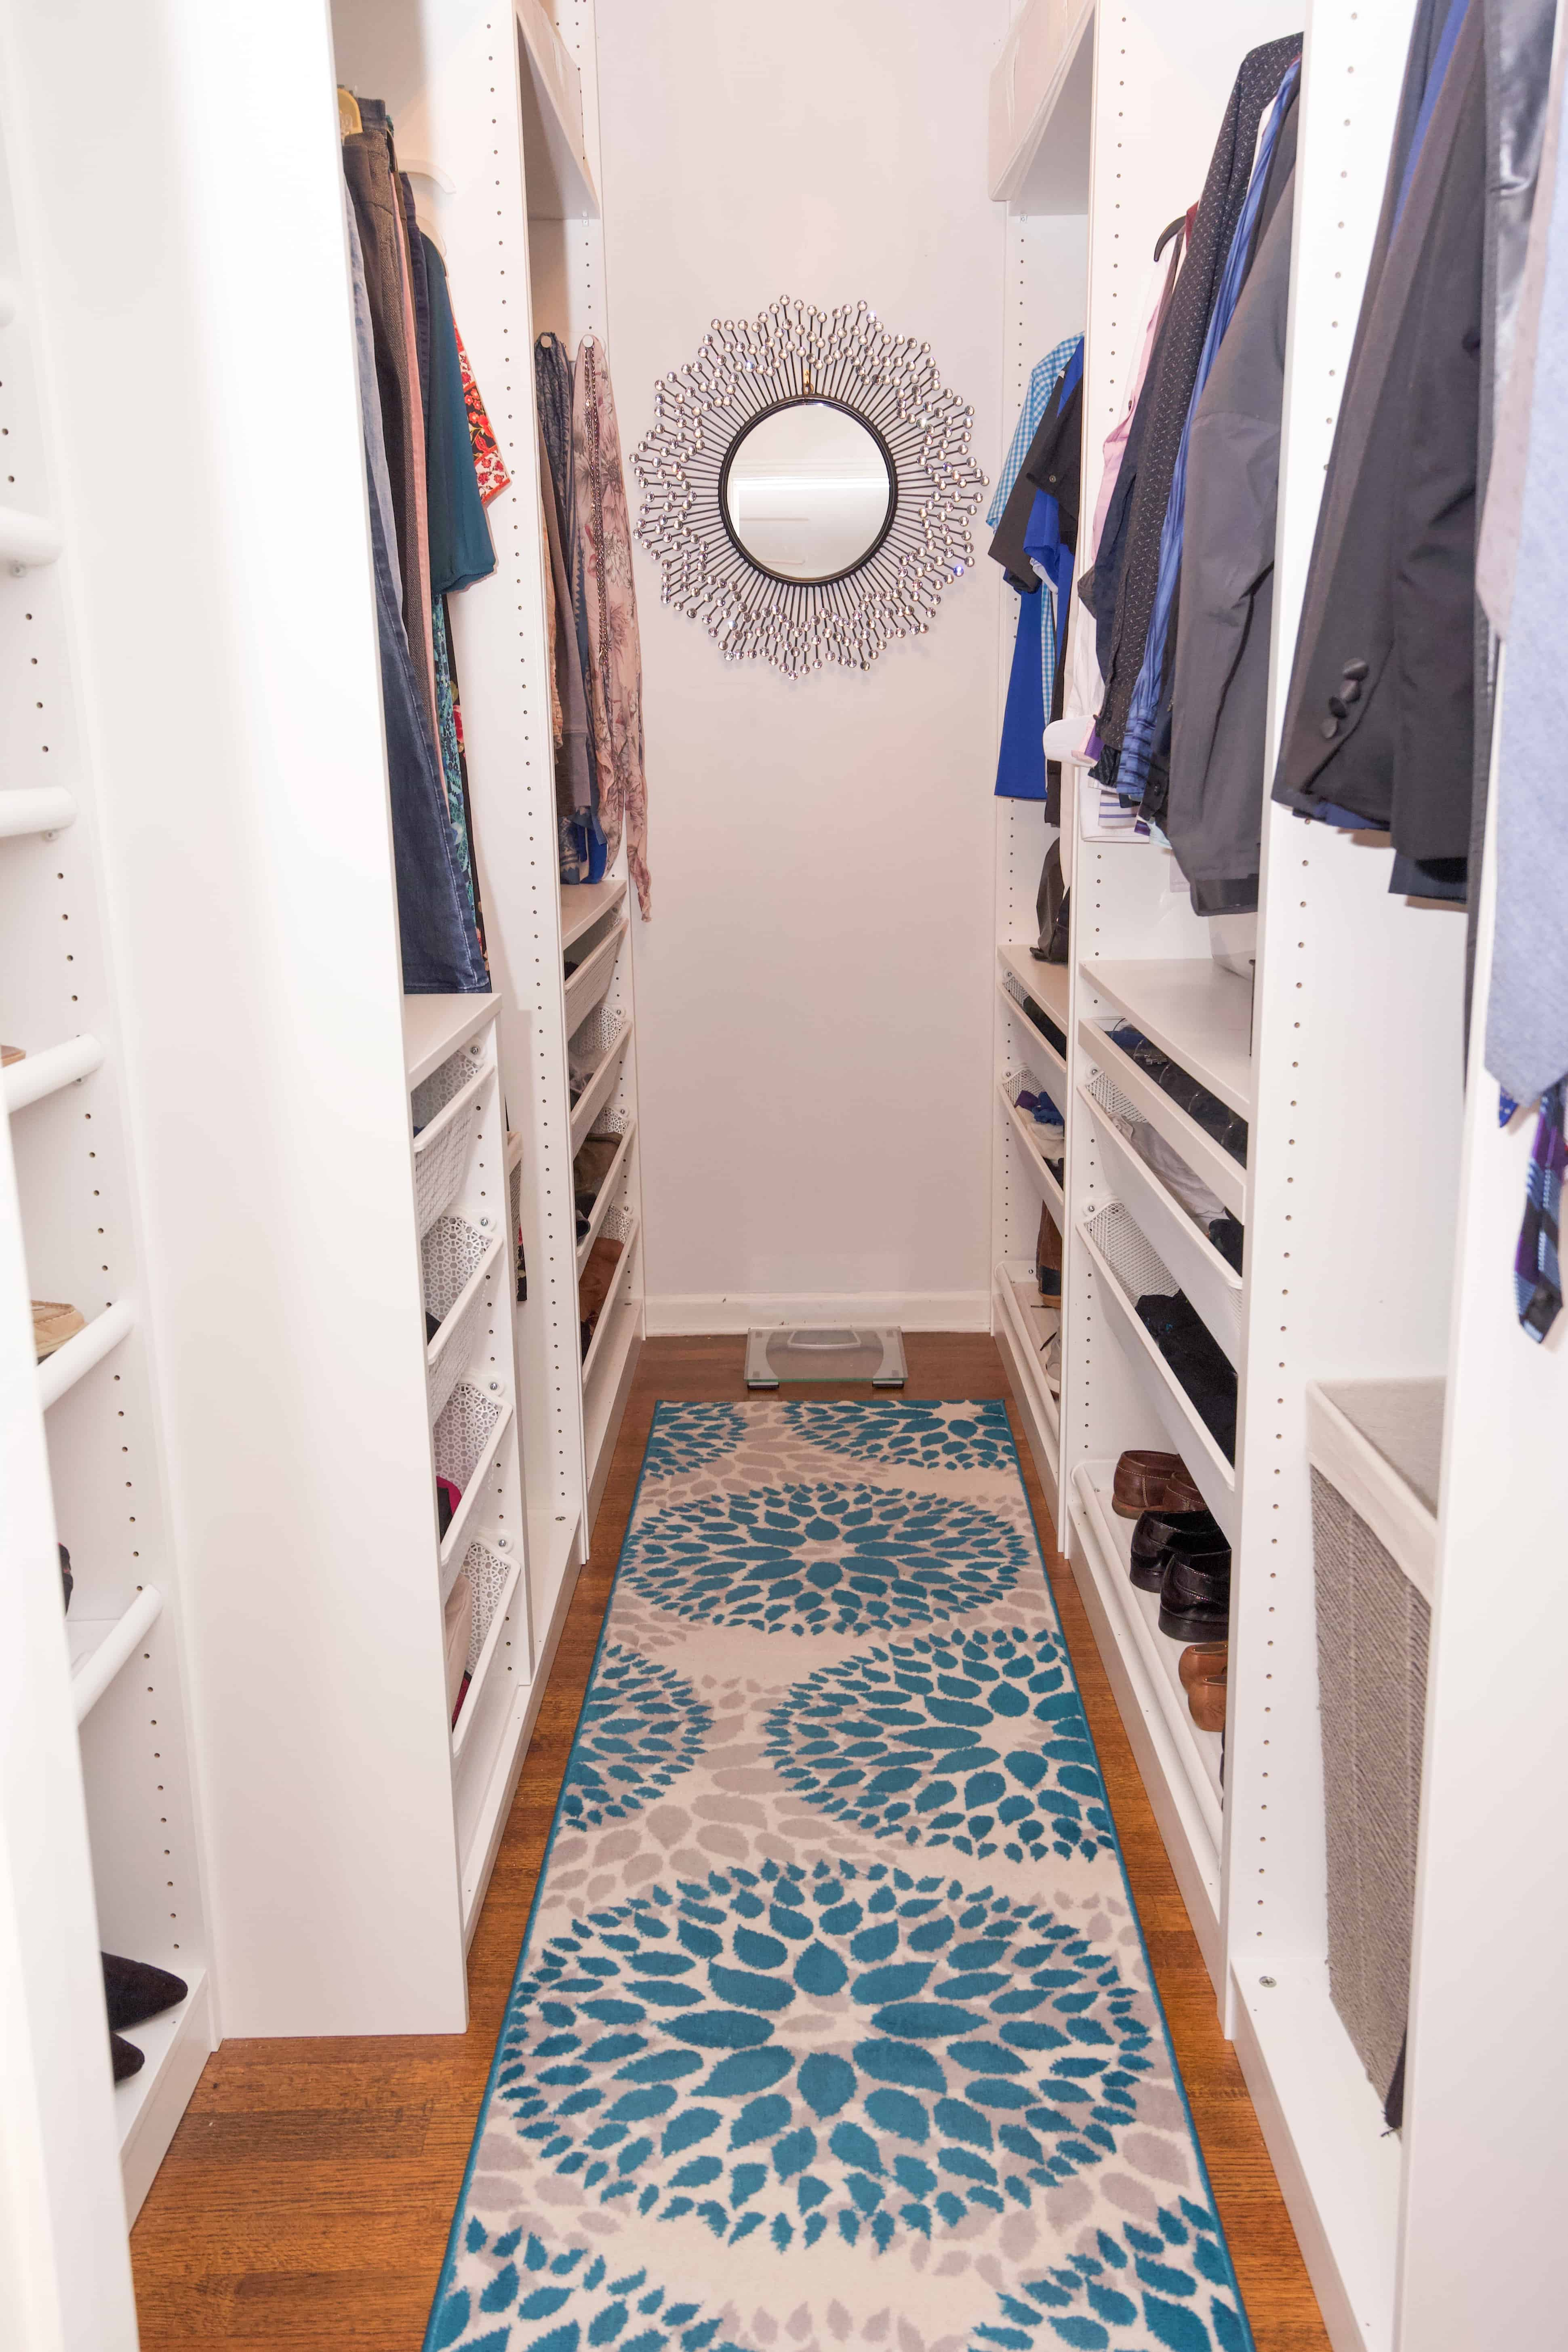 Are you debating whether a closet system is really worth it or not? Here's my opinion, two years after installing the IKEA Pax system in our master closet.